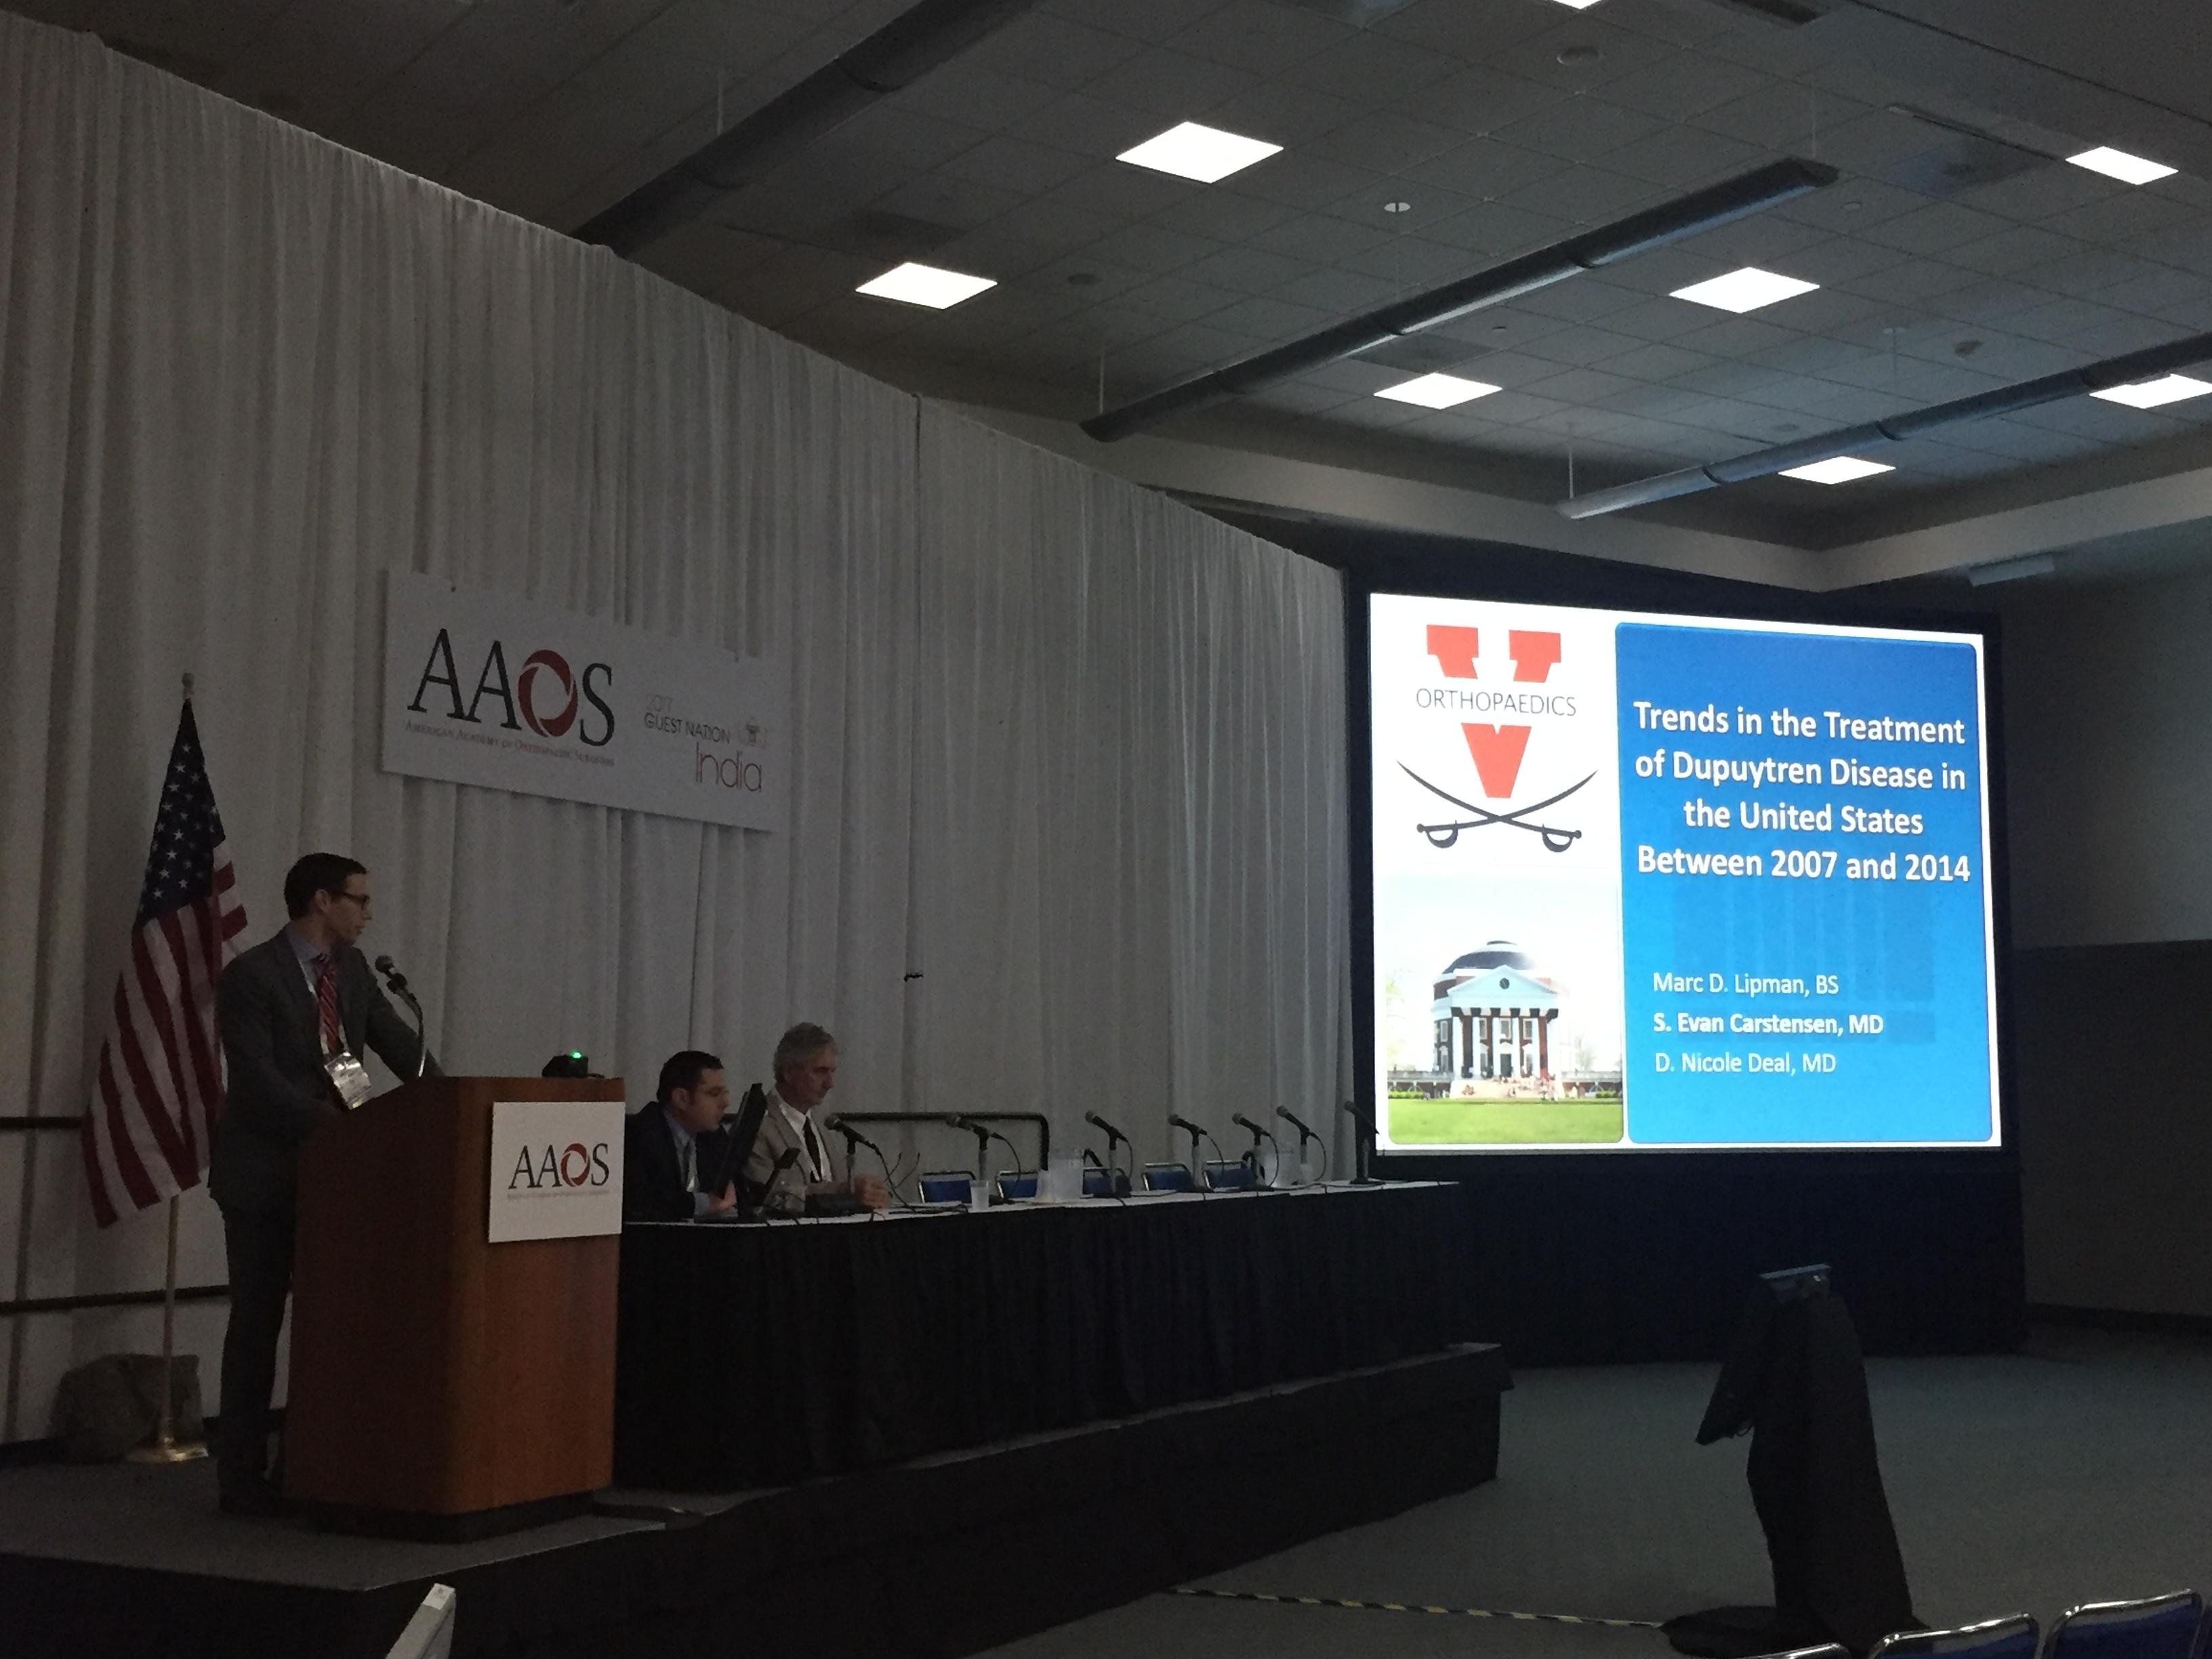 Evan Carstensen presenting his research at the AAOS Annual Meeting in San Diego